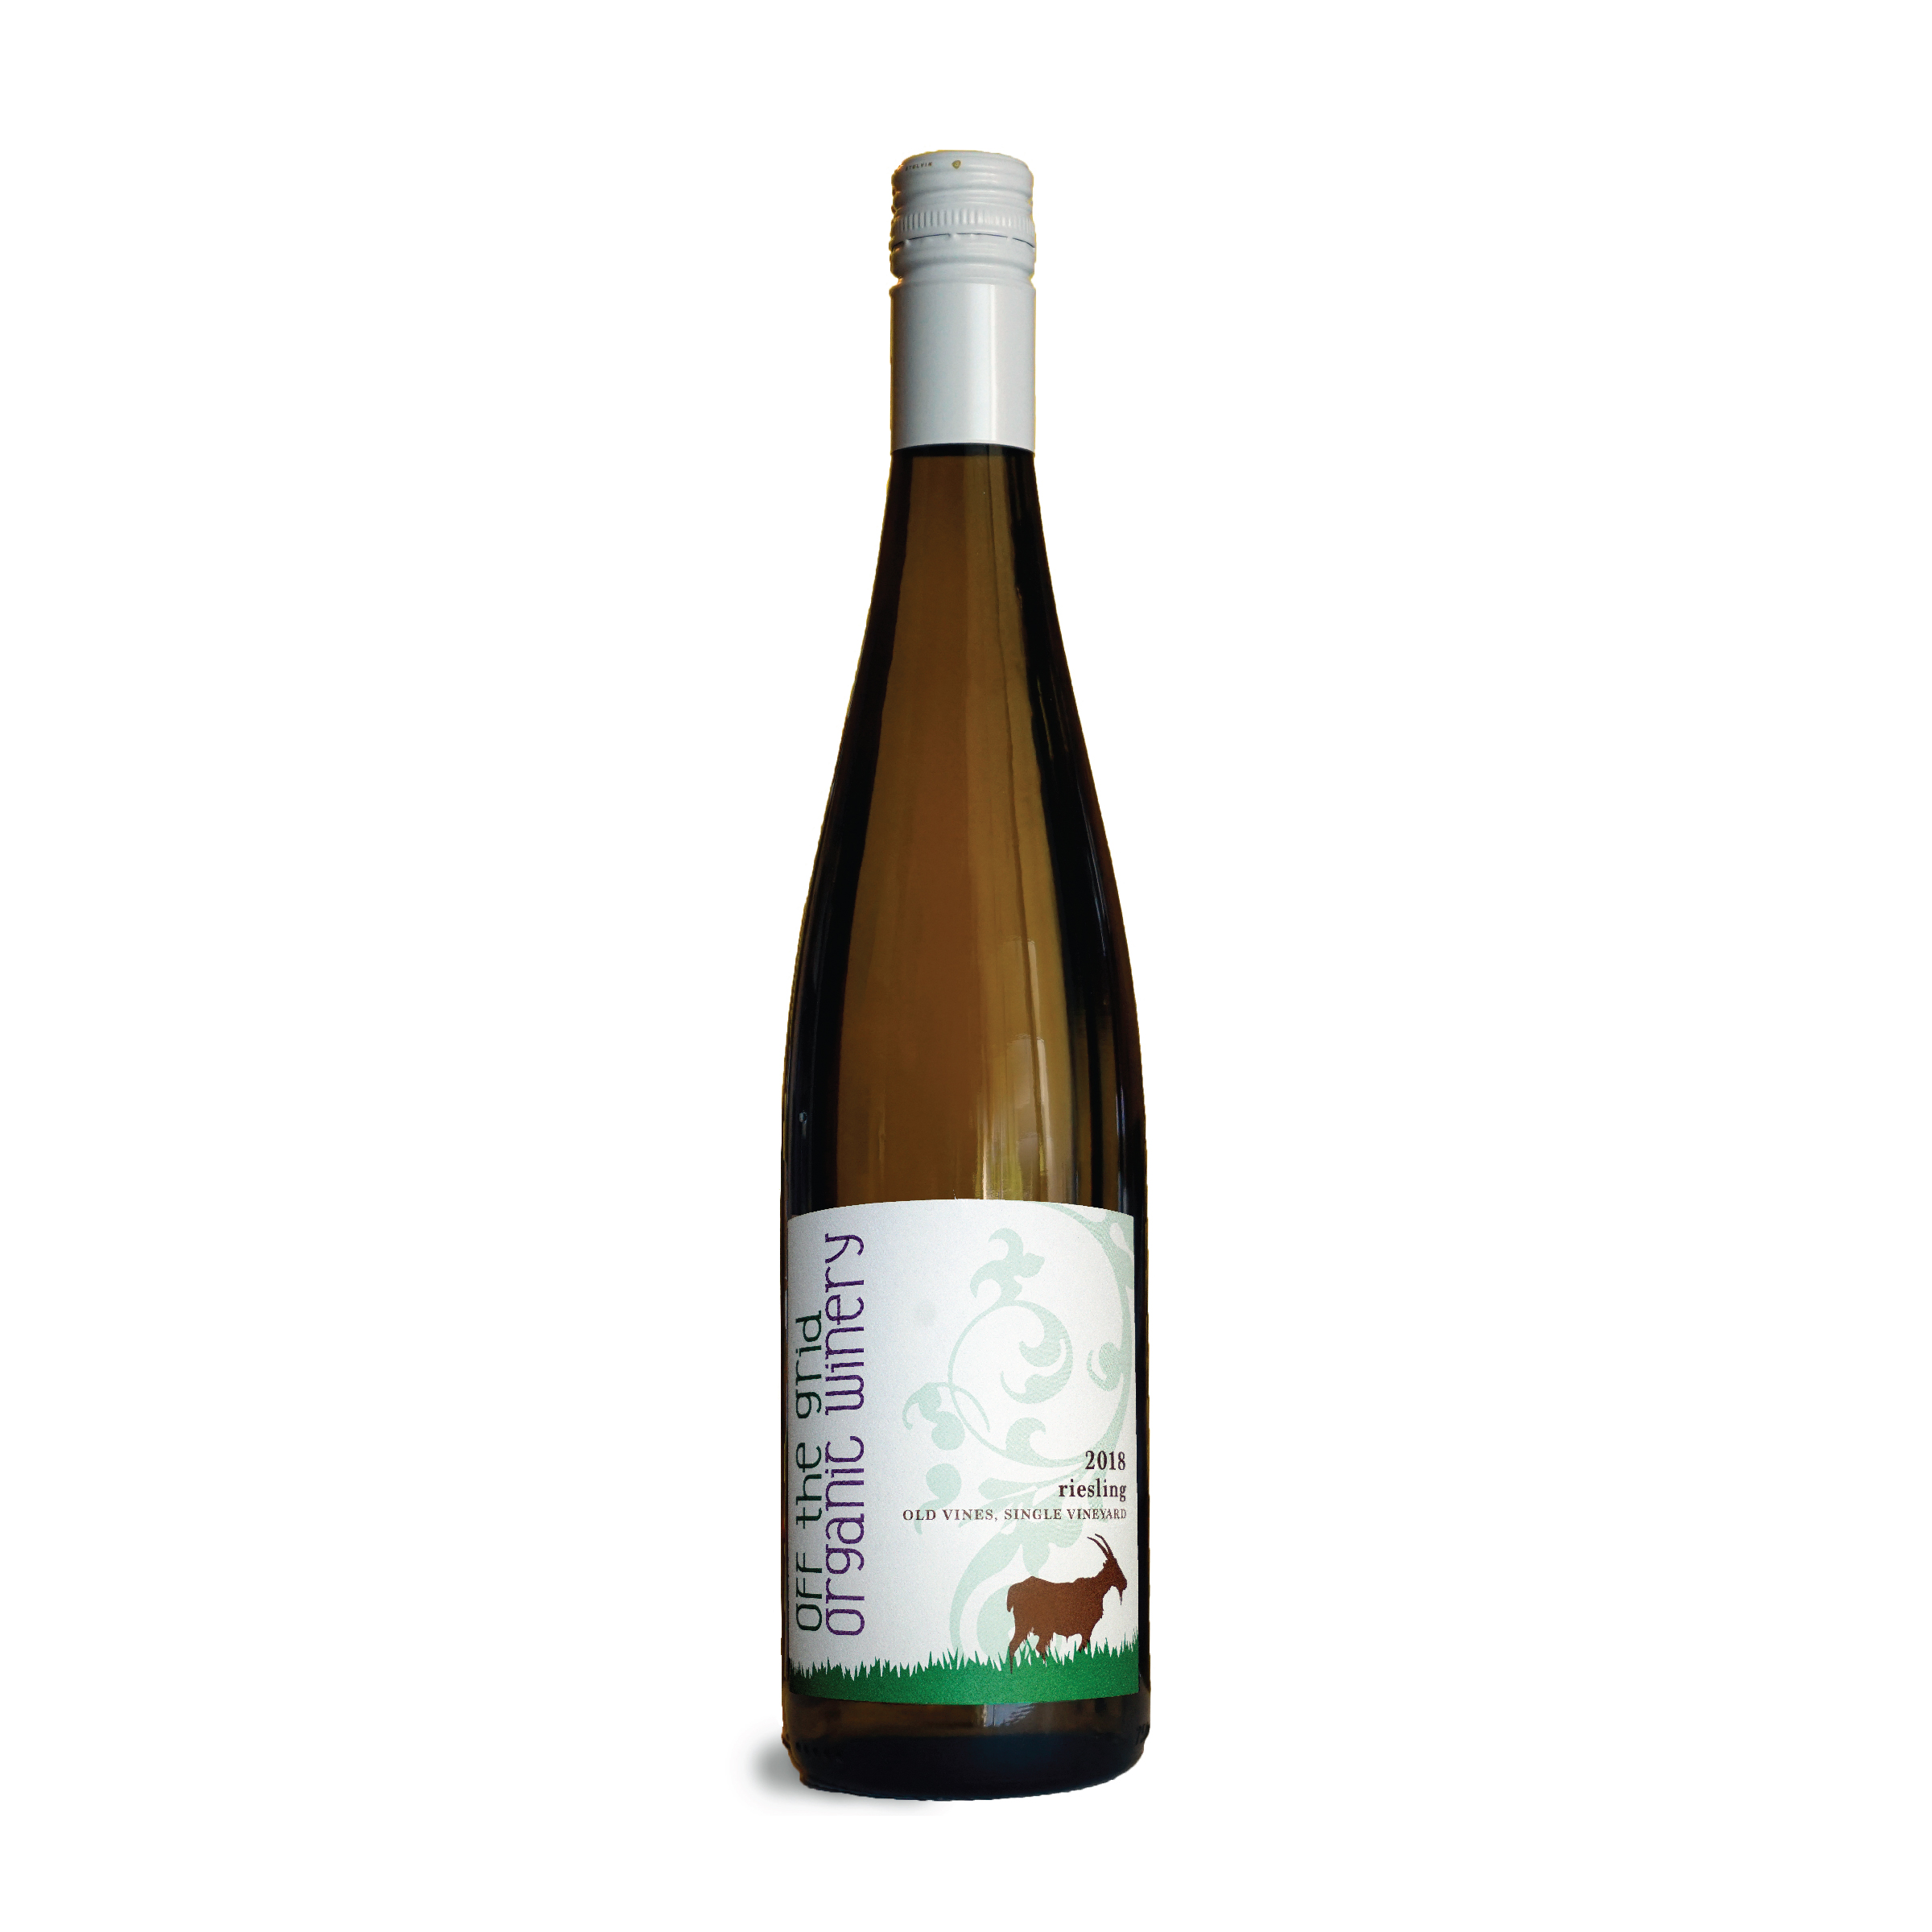 2018 Old Vines Riesling - $30.00This Riesling comes from our oldest and smallest plot of vineyard. This wine delivers bright notes of apple, lime, and apricot with a touch of slate. It's a high acidity makes it taste dry. Pair this wine with raw oysters, sharp cheese, or chicken satay.